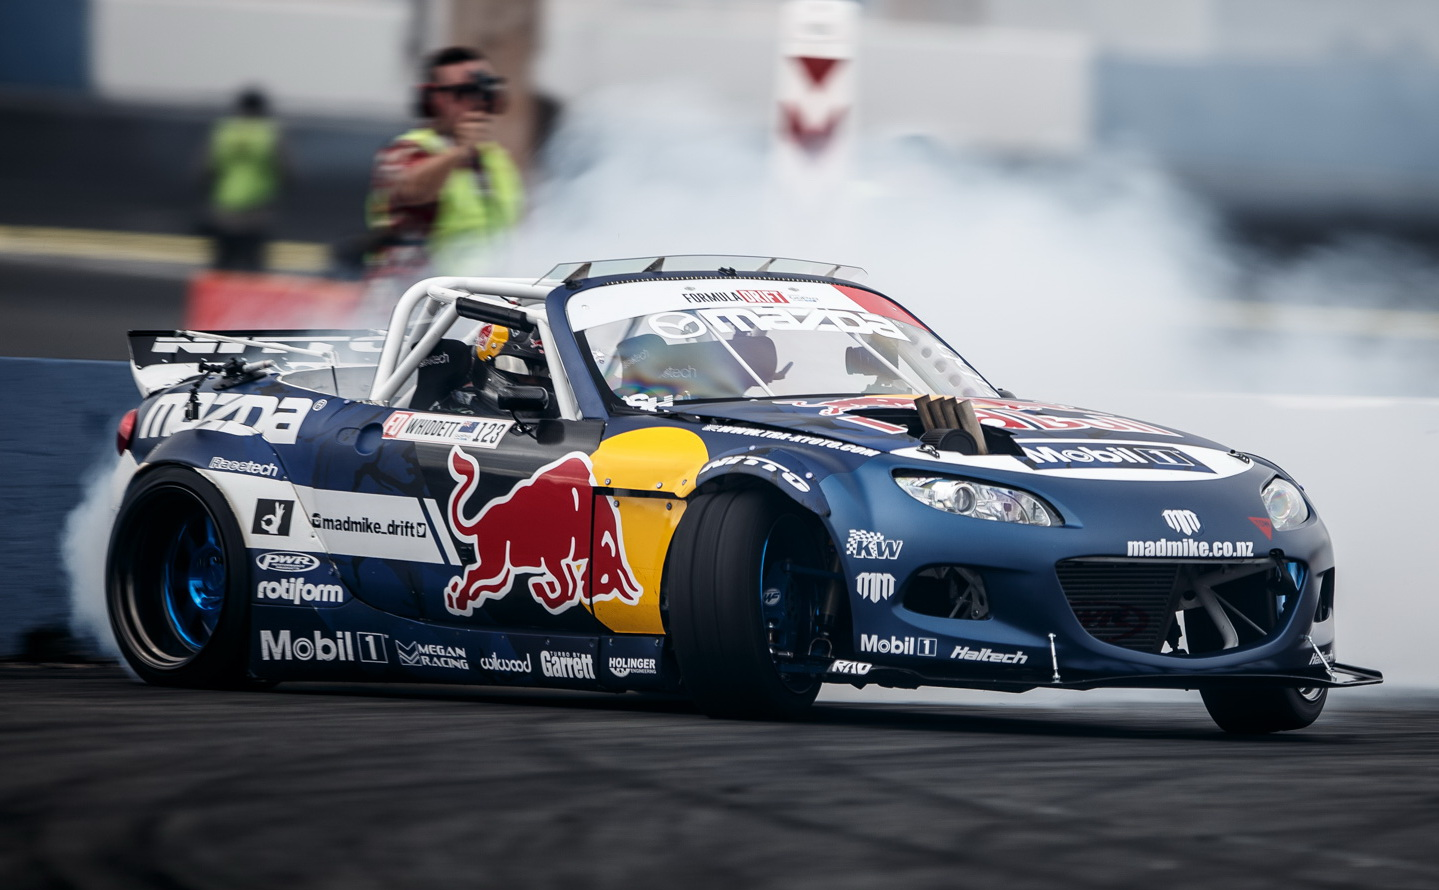 Drift-wallpaper-wpc5804438